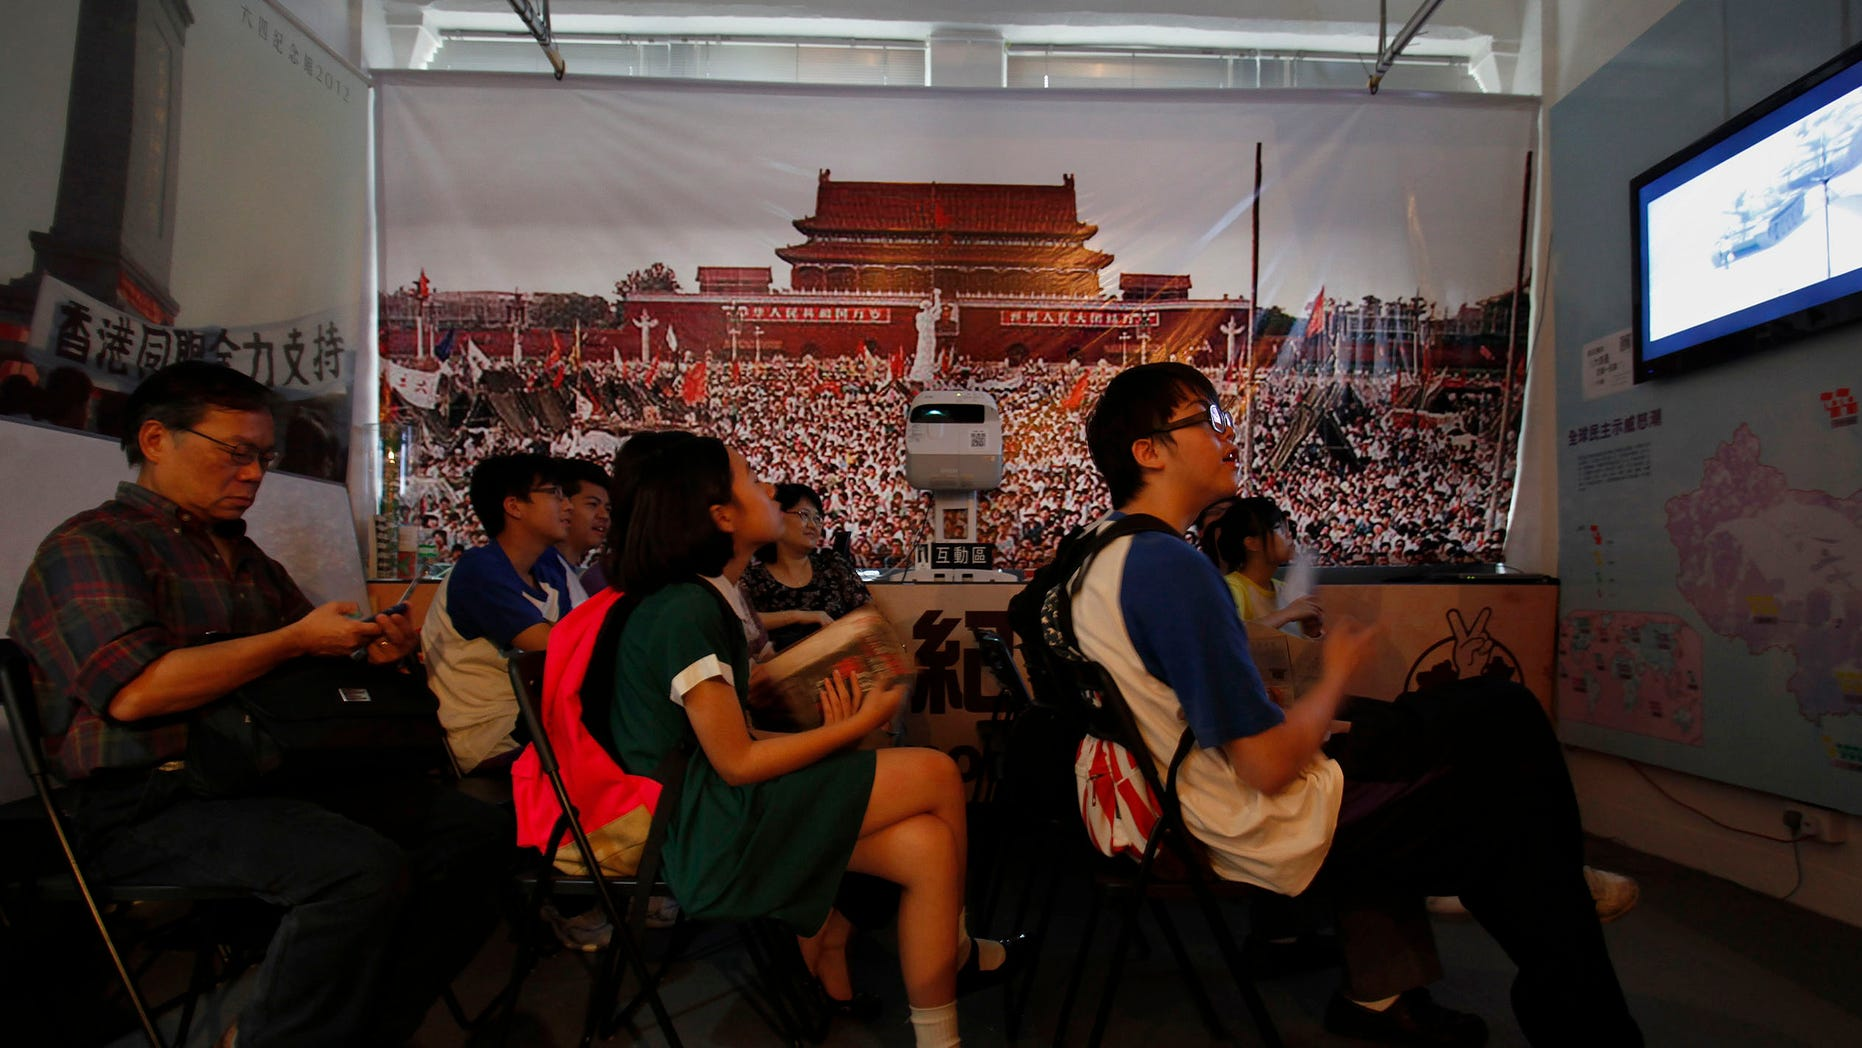 May 31, 2012: Students watch video footage of the crackdown of the 1989 pro-democracy movement at Beijing's Tiananmen Square, inside a residential block run by activists that serves as a temporary museum for displaying items relating to the event, in Hong Kong.